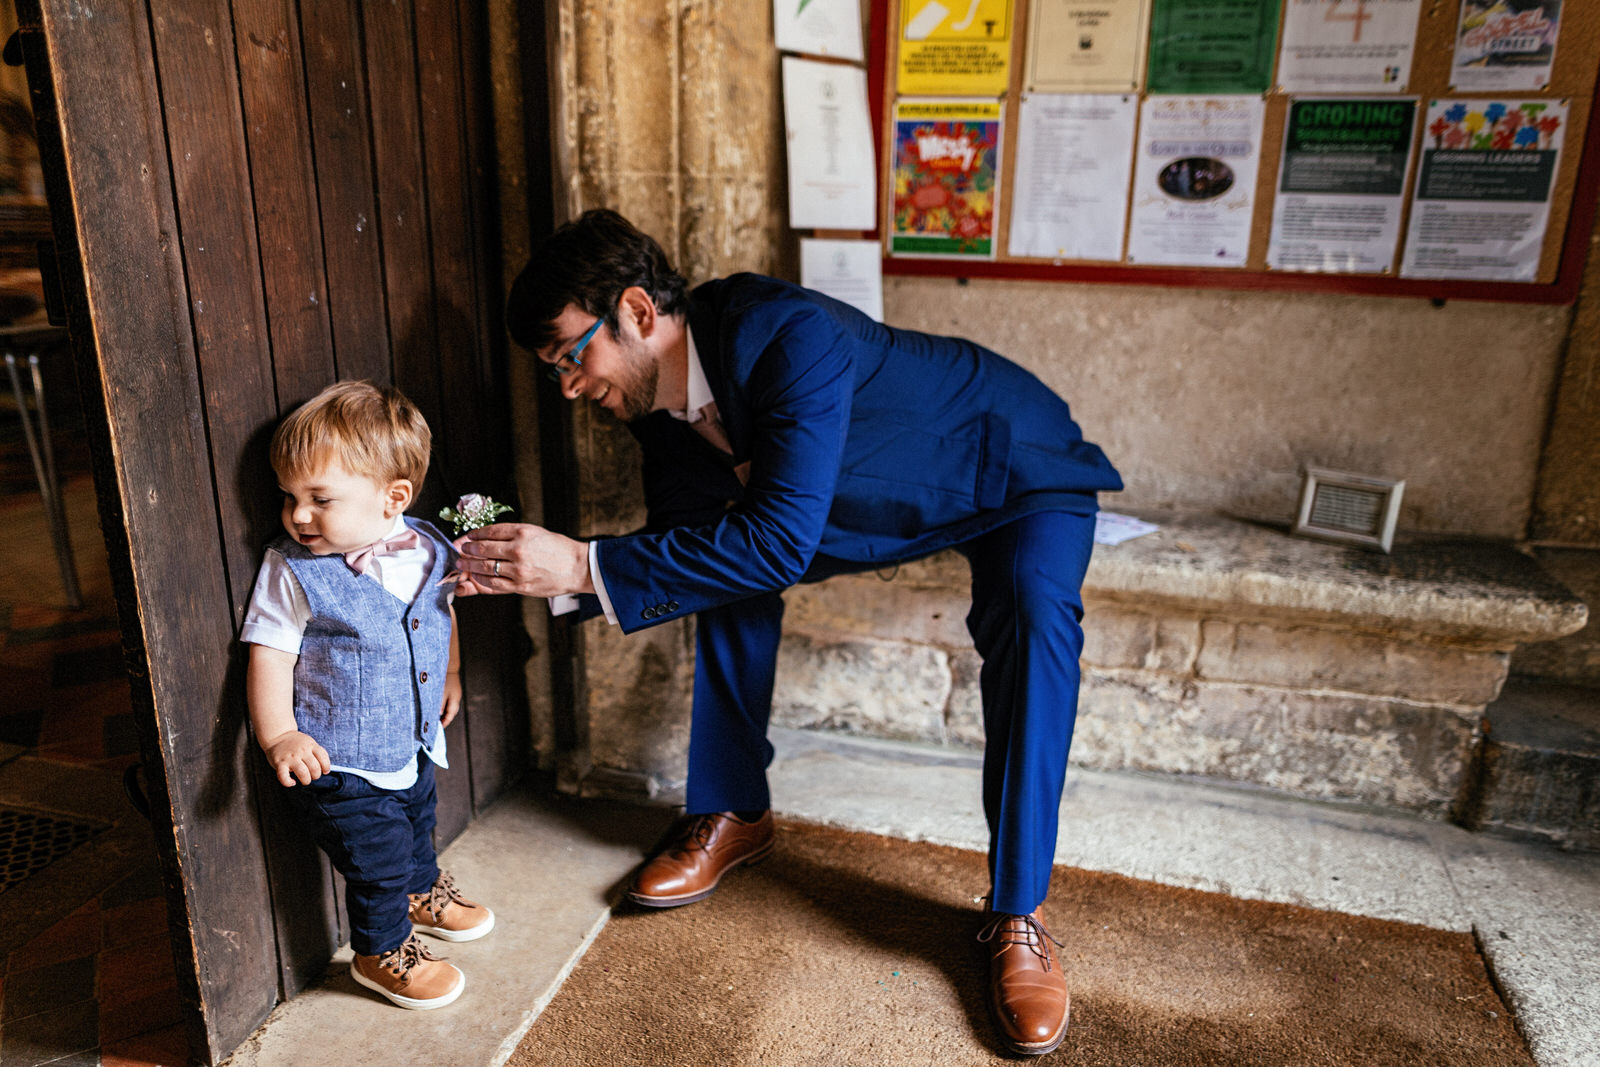 Winkworth-Farm-Wedding-Photographer-021.jpg